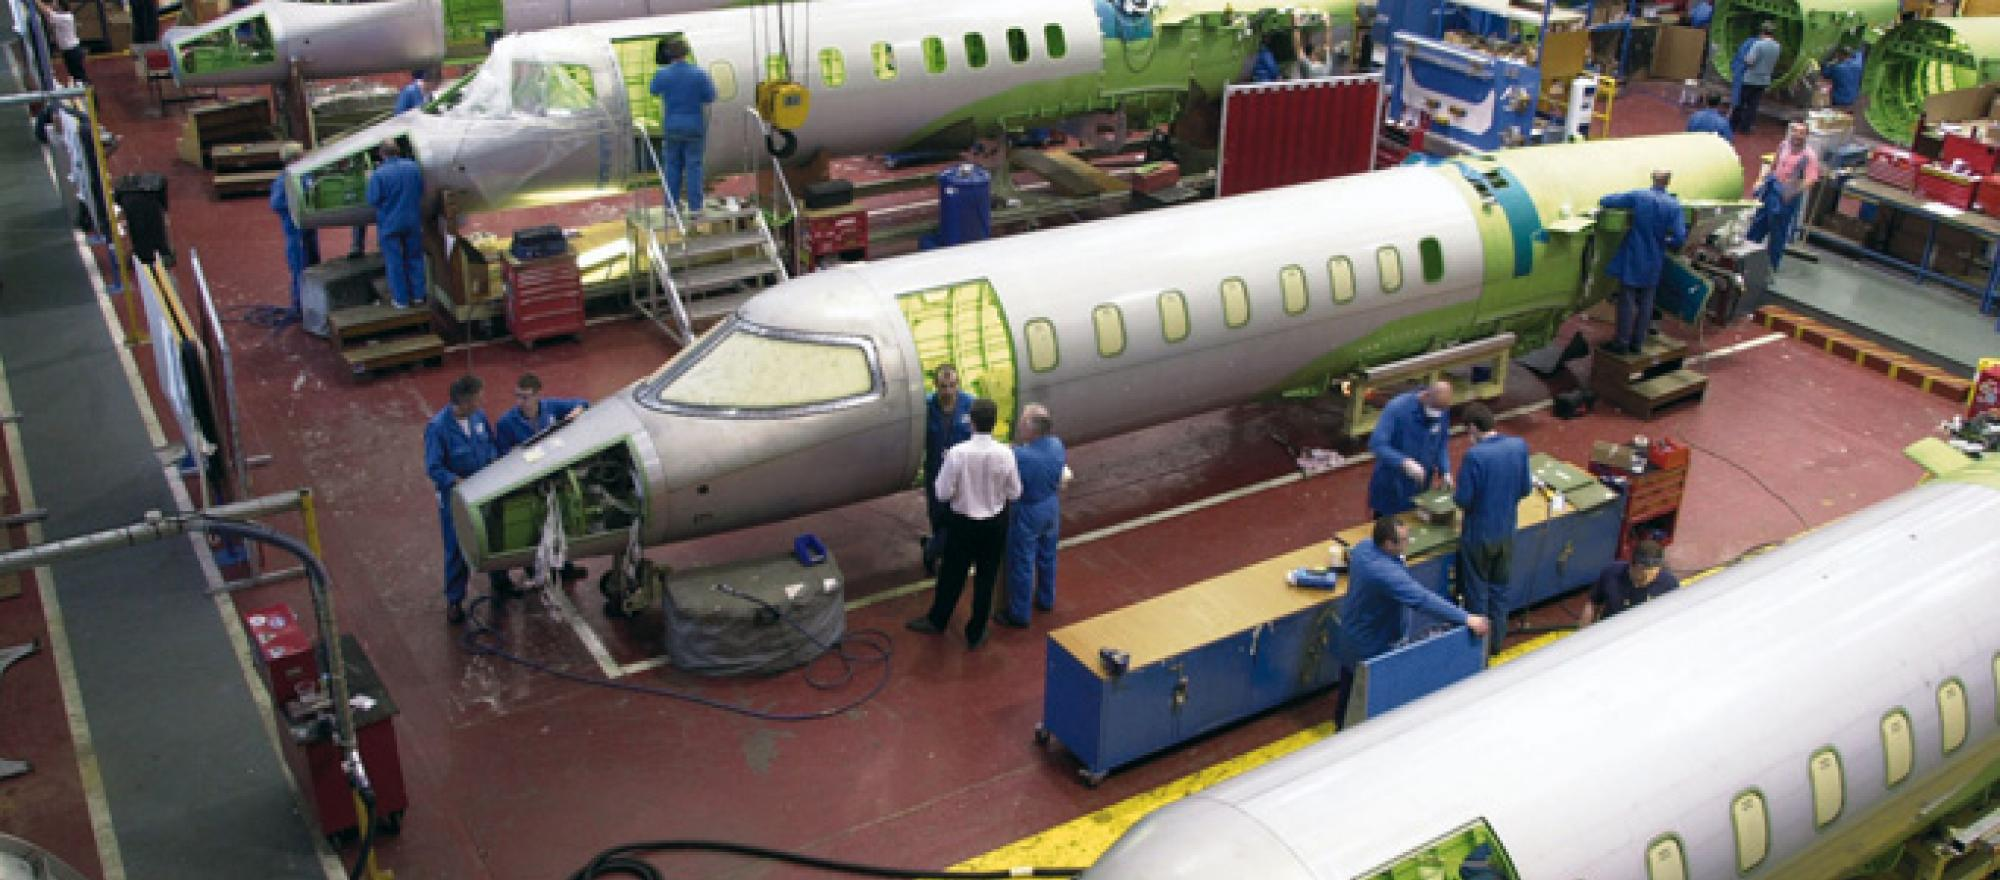 National Geographic Channel Documents Making of a Learjet